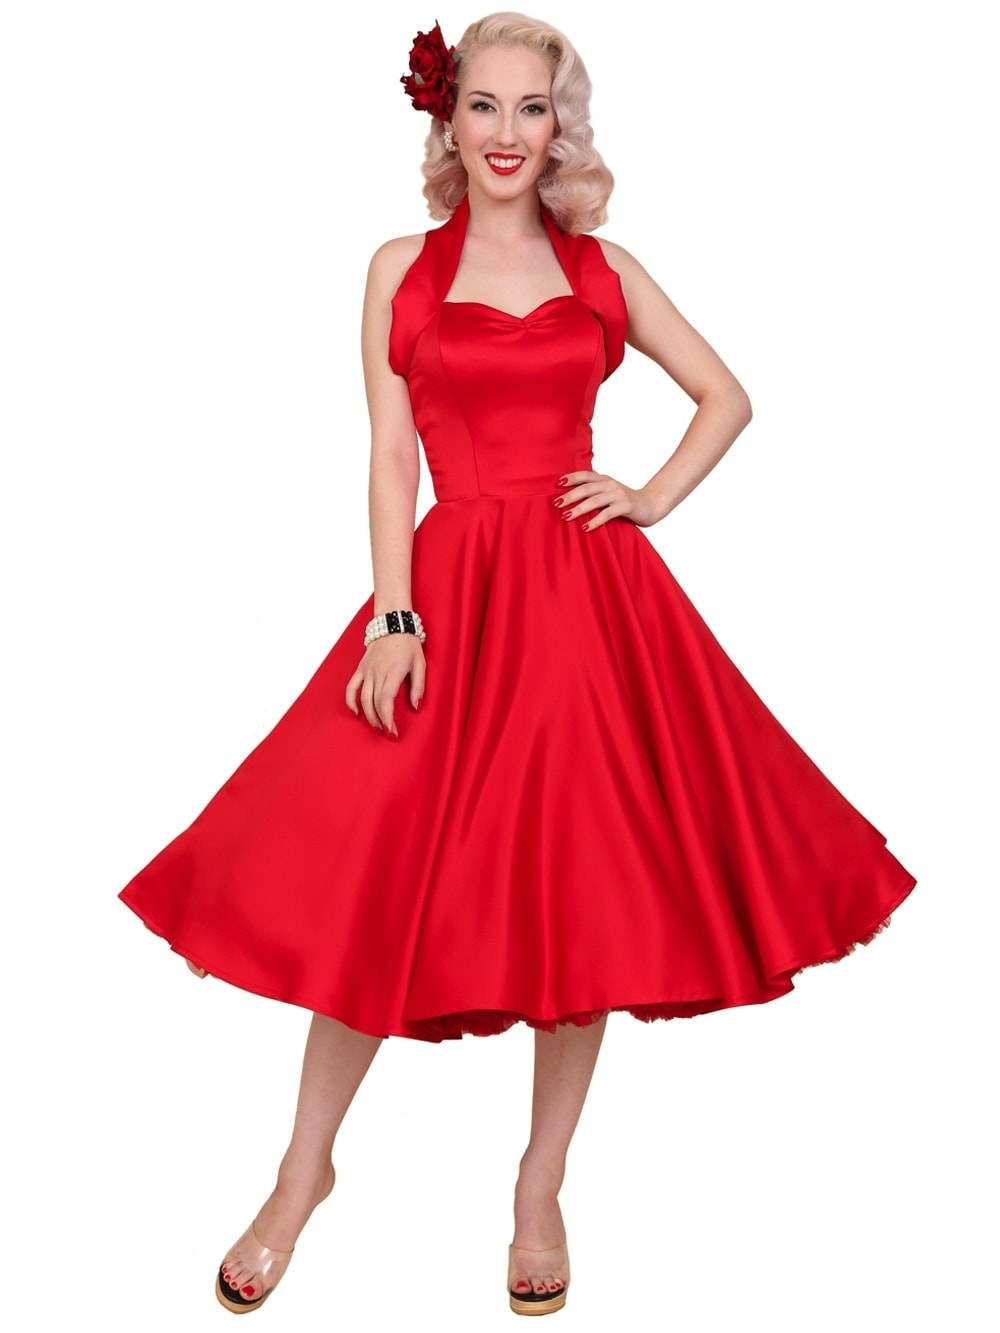 bc175190294 1950s Halterneck Red Duchess Dress from Vivien of Holloway